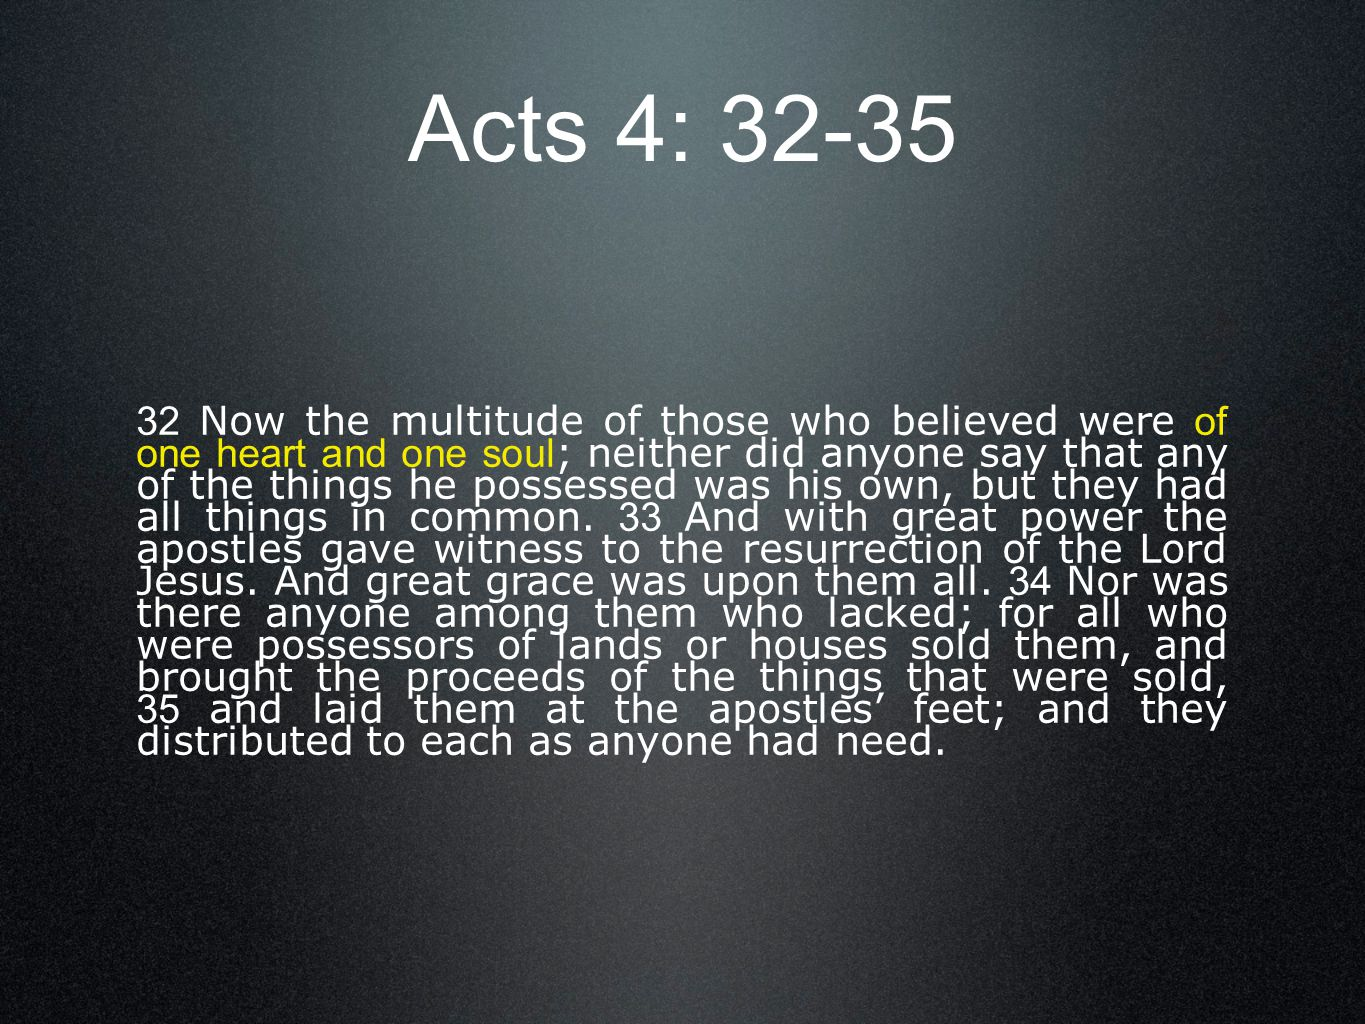 Acts 4: 32-35